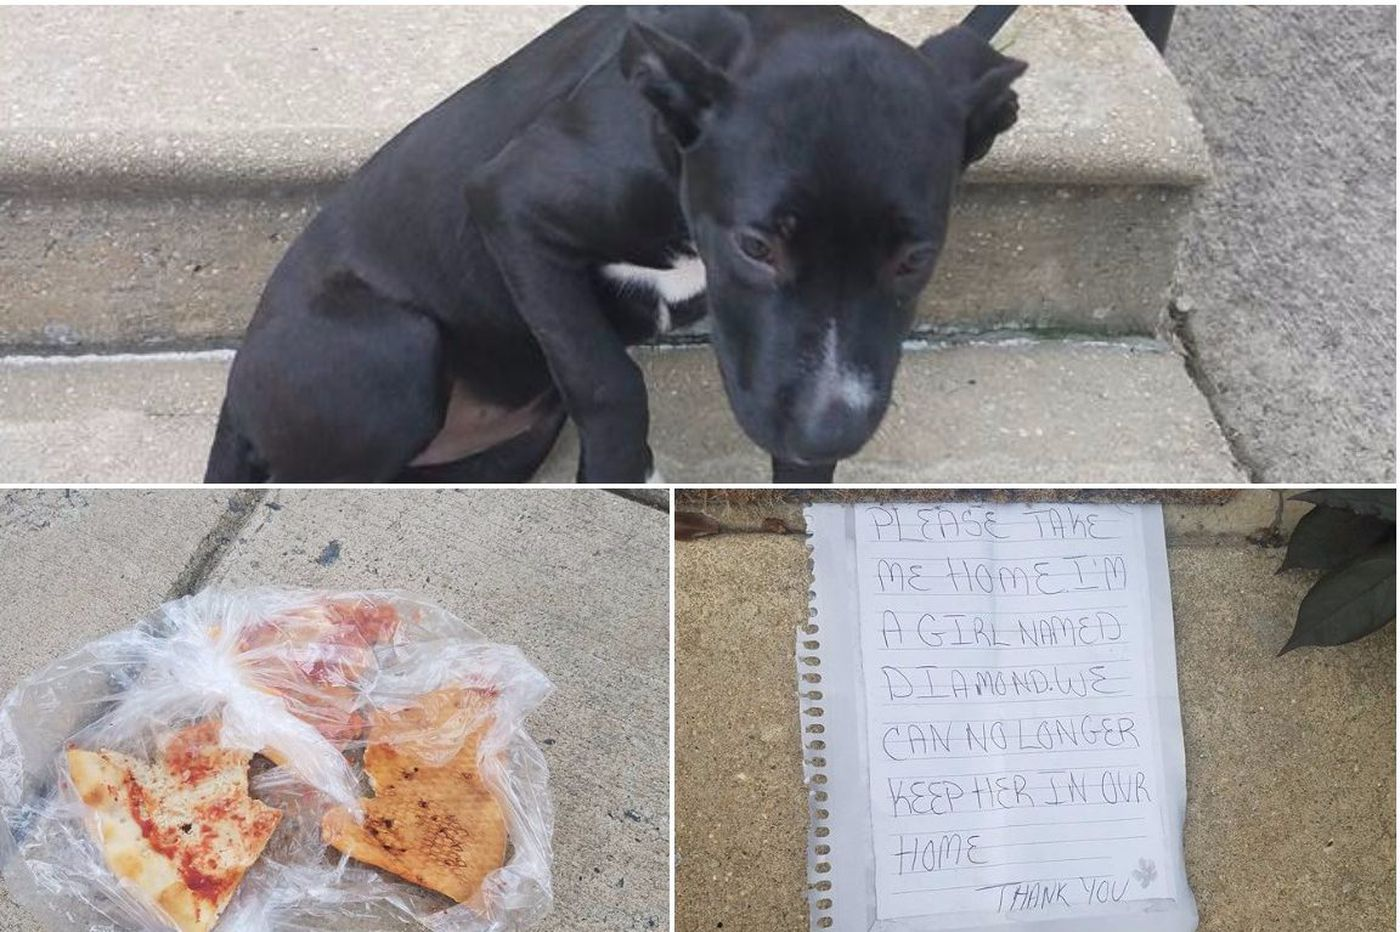 A puppy was abandoned with pizza and a note. A neighborhood Facebook group found her a new home